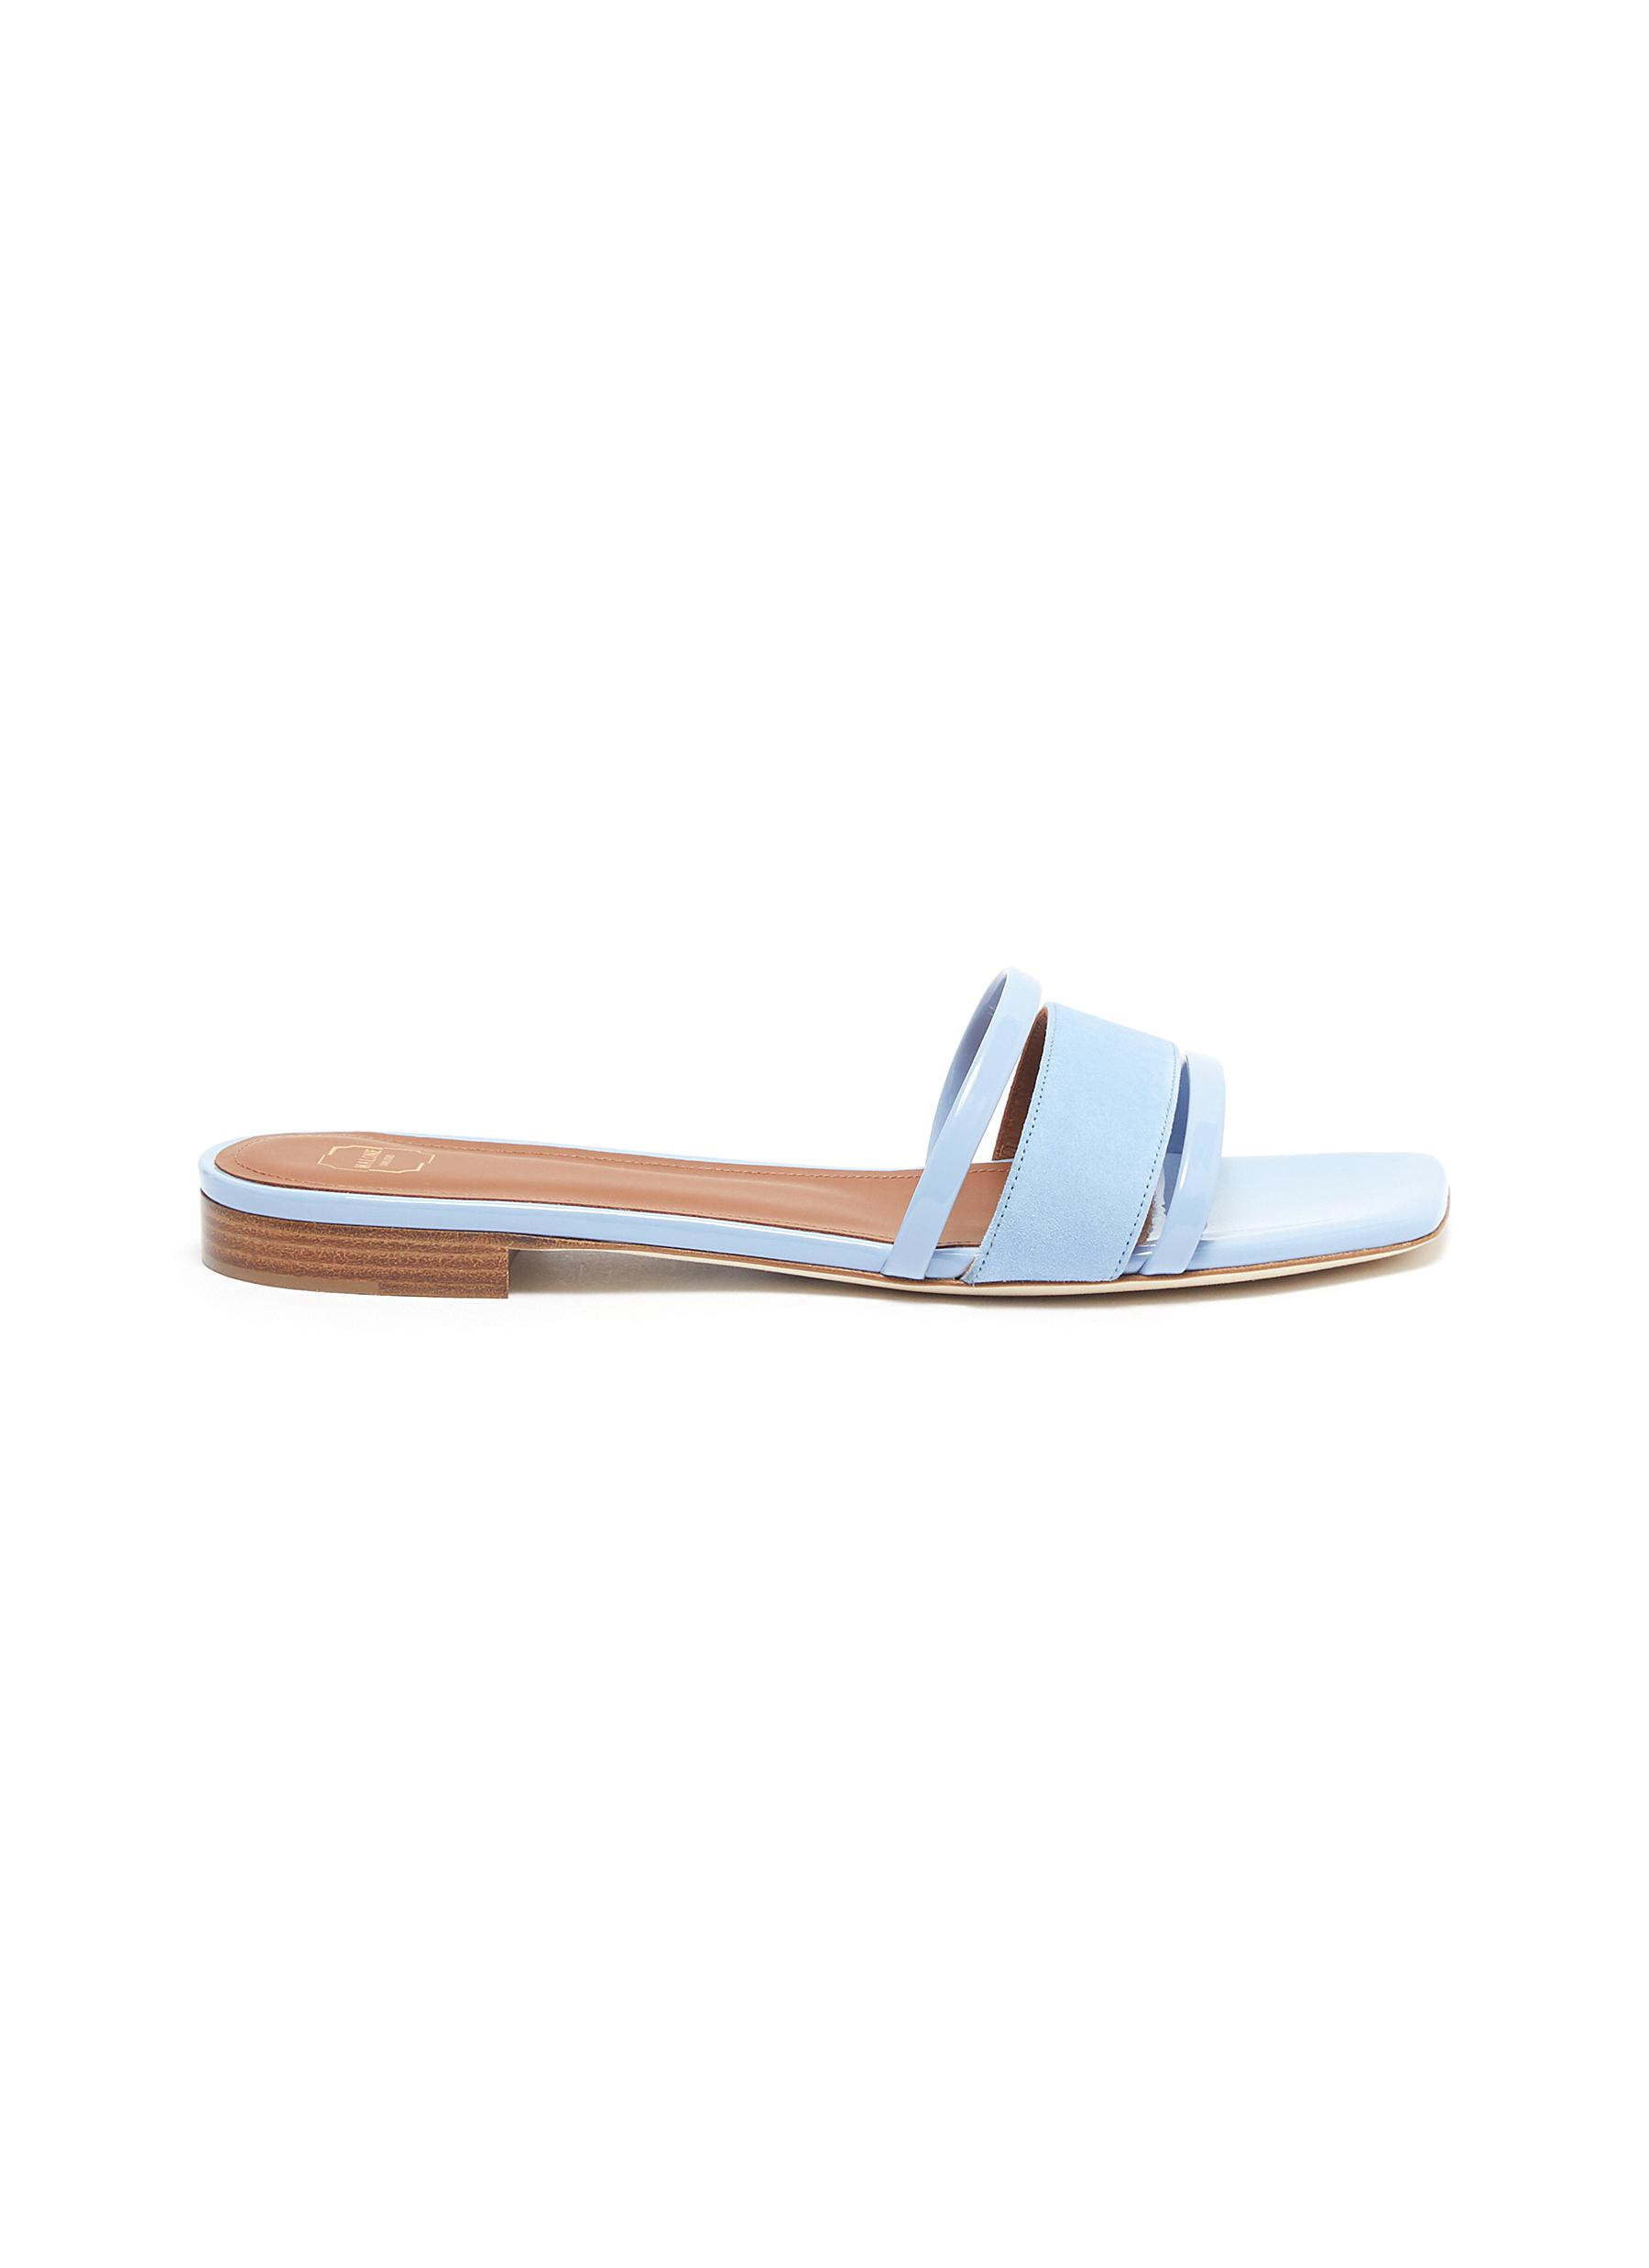 Malone Souliers Flats Demi leather sandals